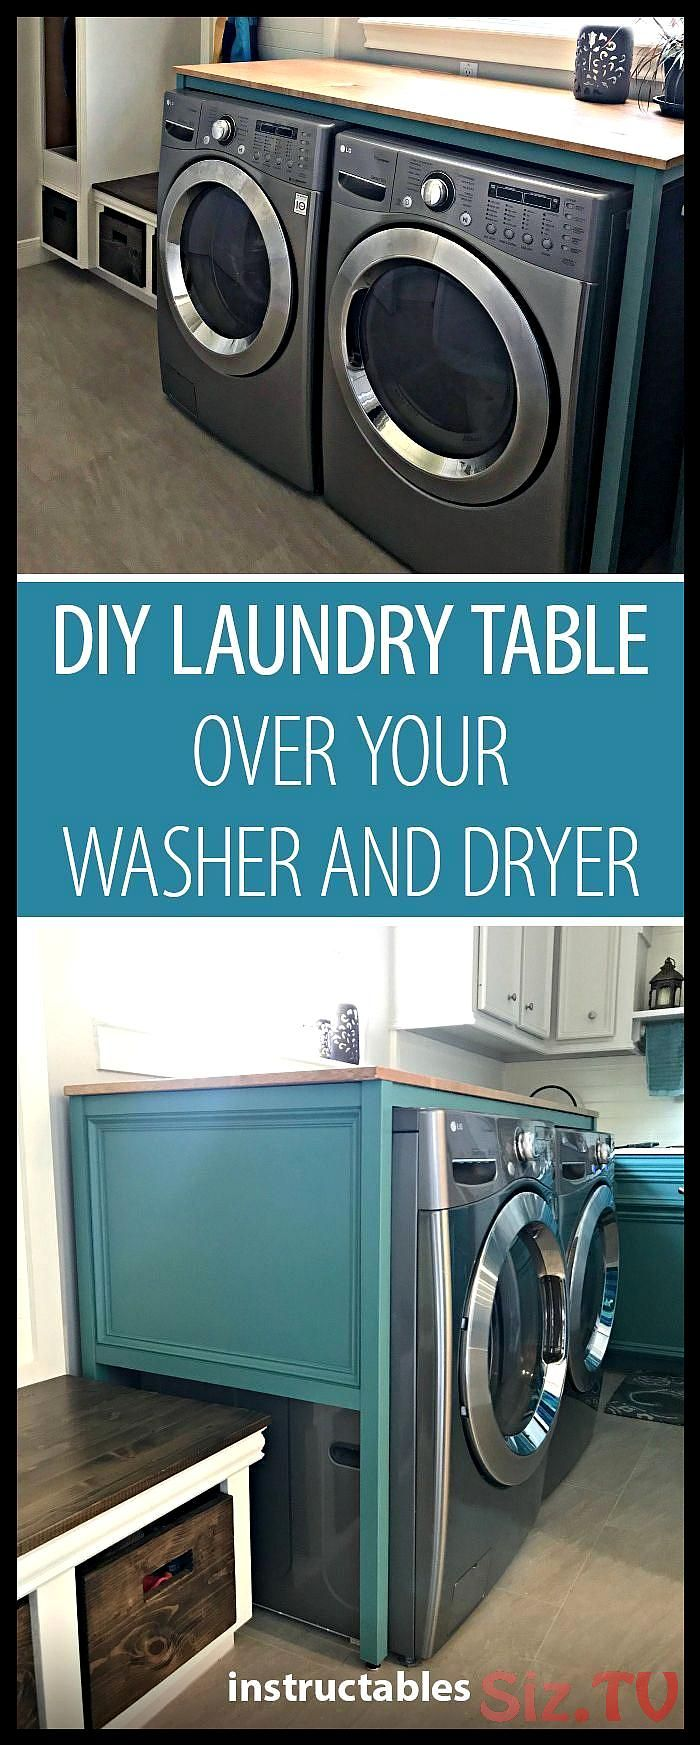 Diy Laundry Table Over Your Washer And Dryer Diy Laundry Table Over Your Washer And Dryer Instructables Save Diy Waschkuche Small Woodworking Projects